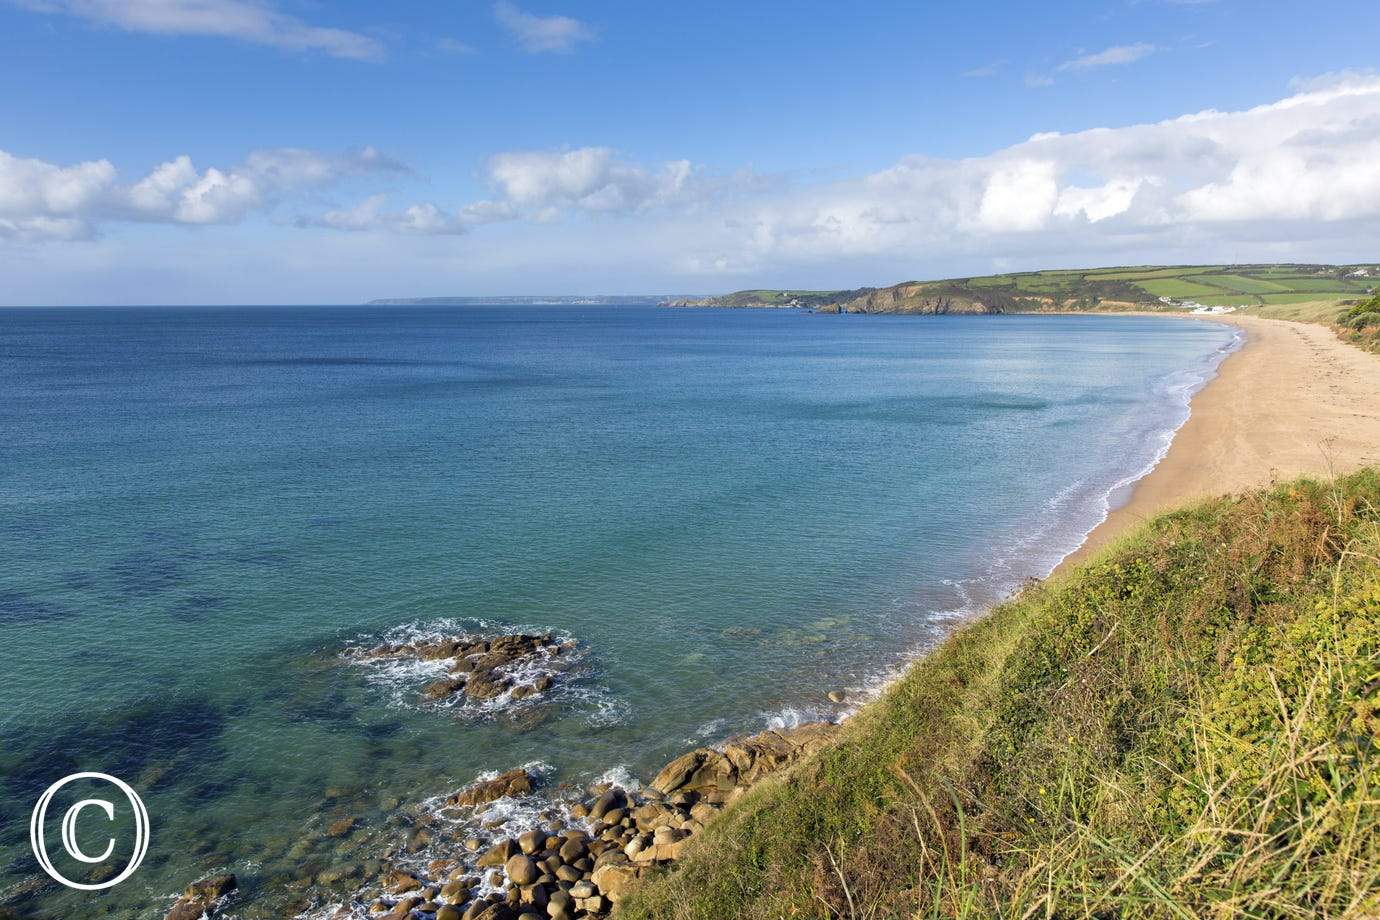 Stunning Praa Sands beach is only 5 miles